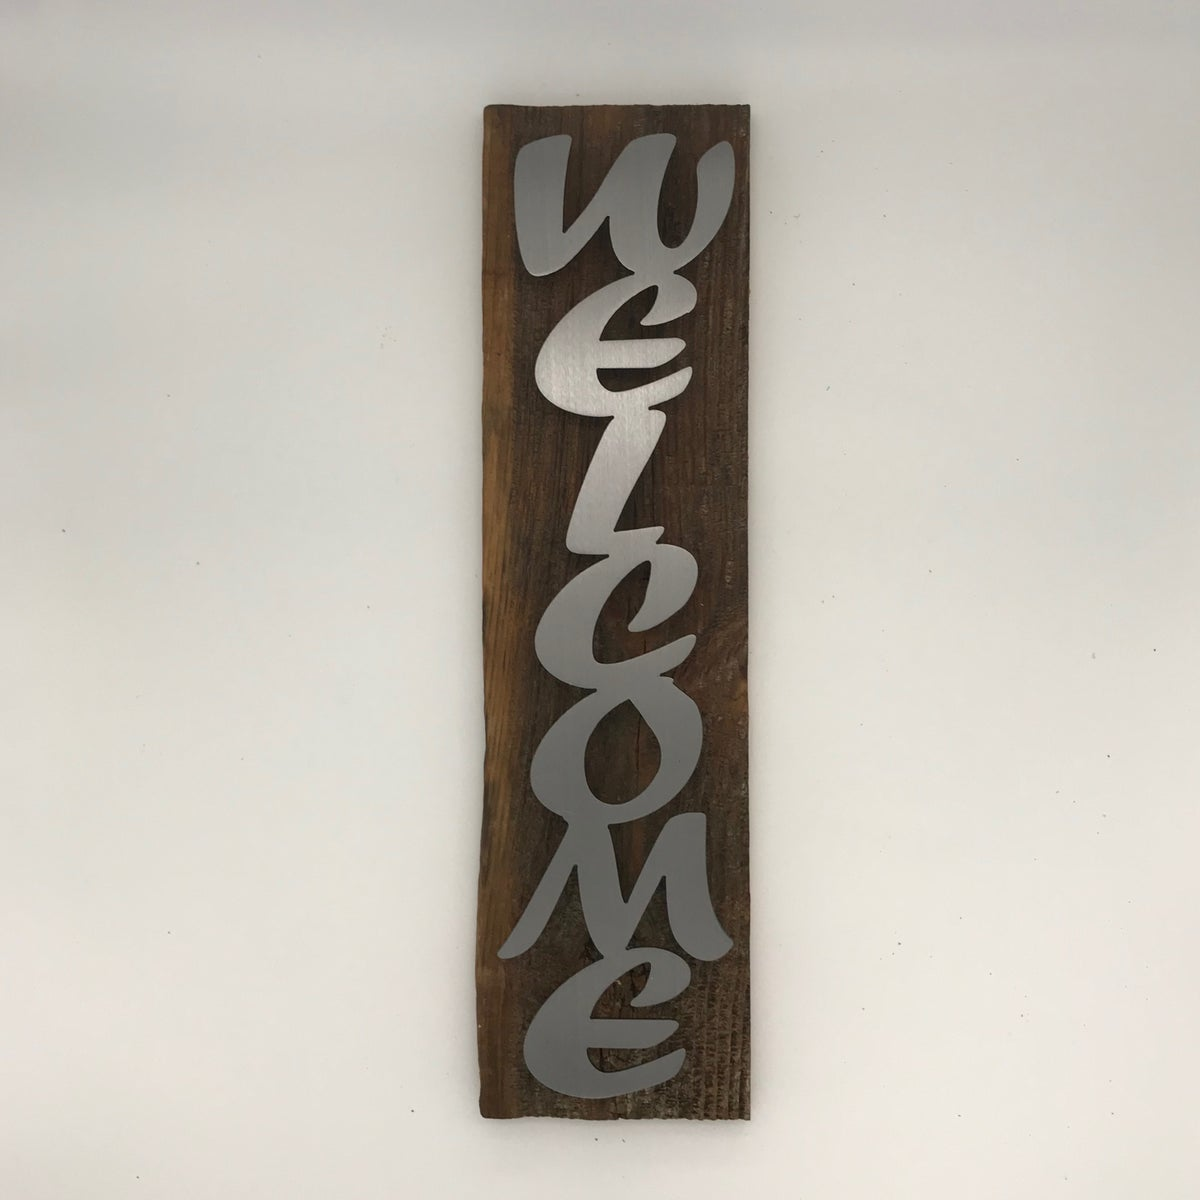 Welcome on Barnwood with Script Text